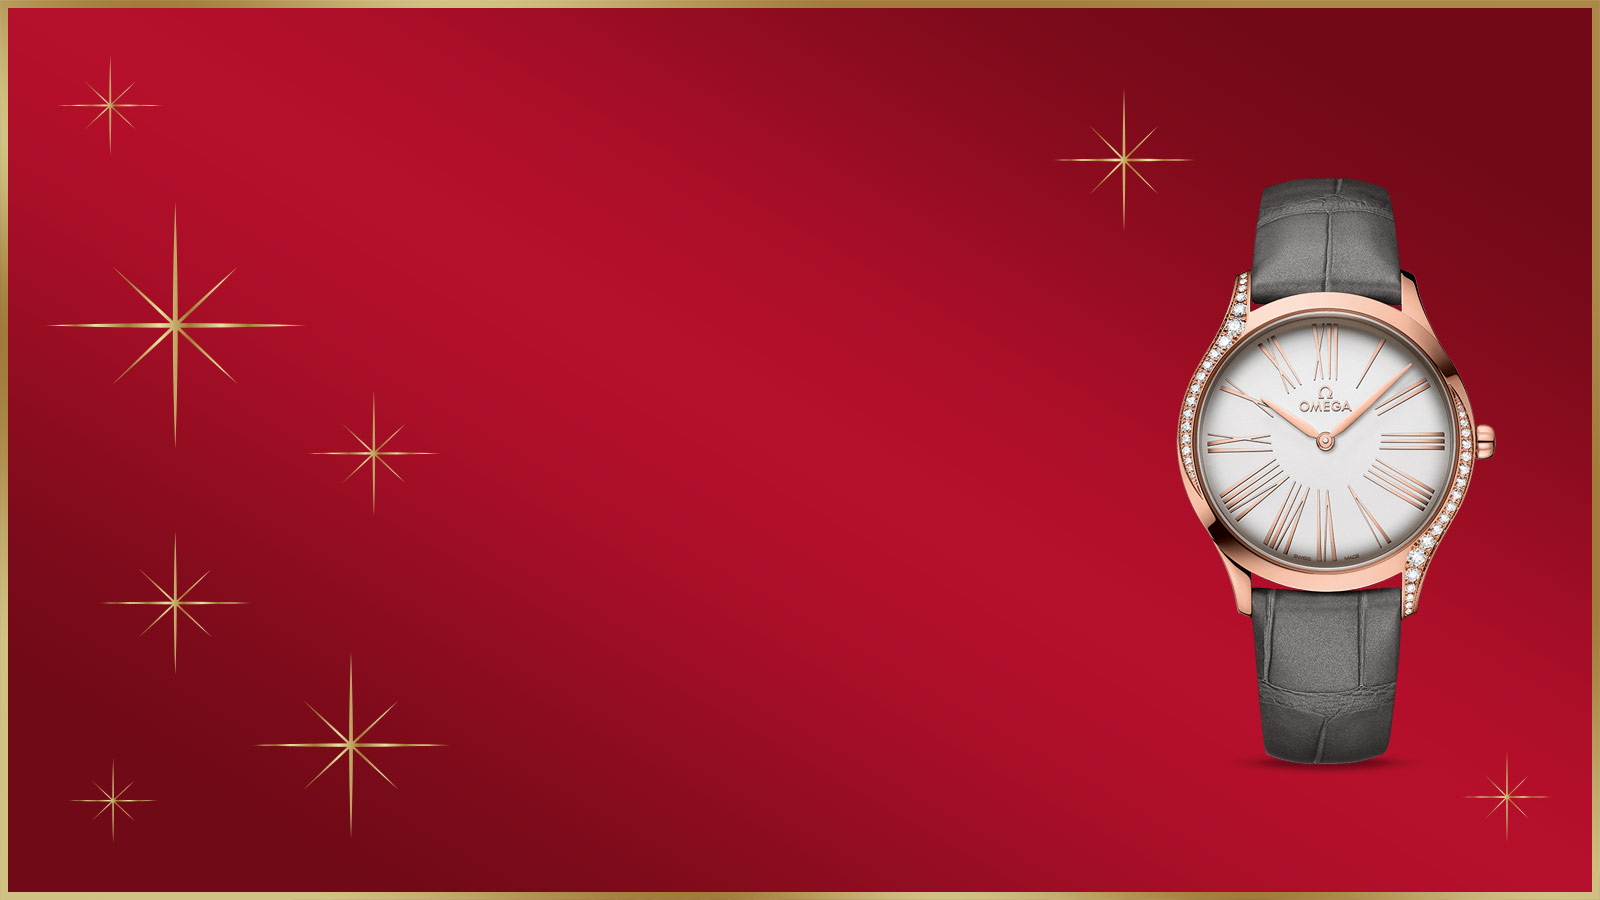 Omega®: Swiss Luxury Watches Since 1848 Carousel 1 - 58678